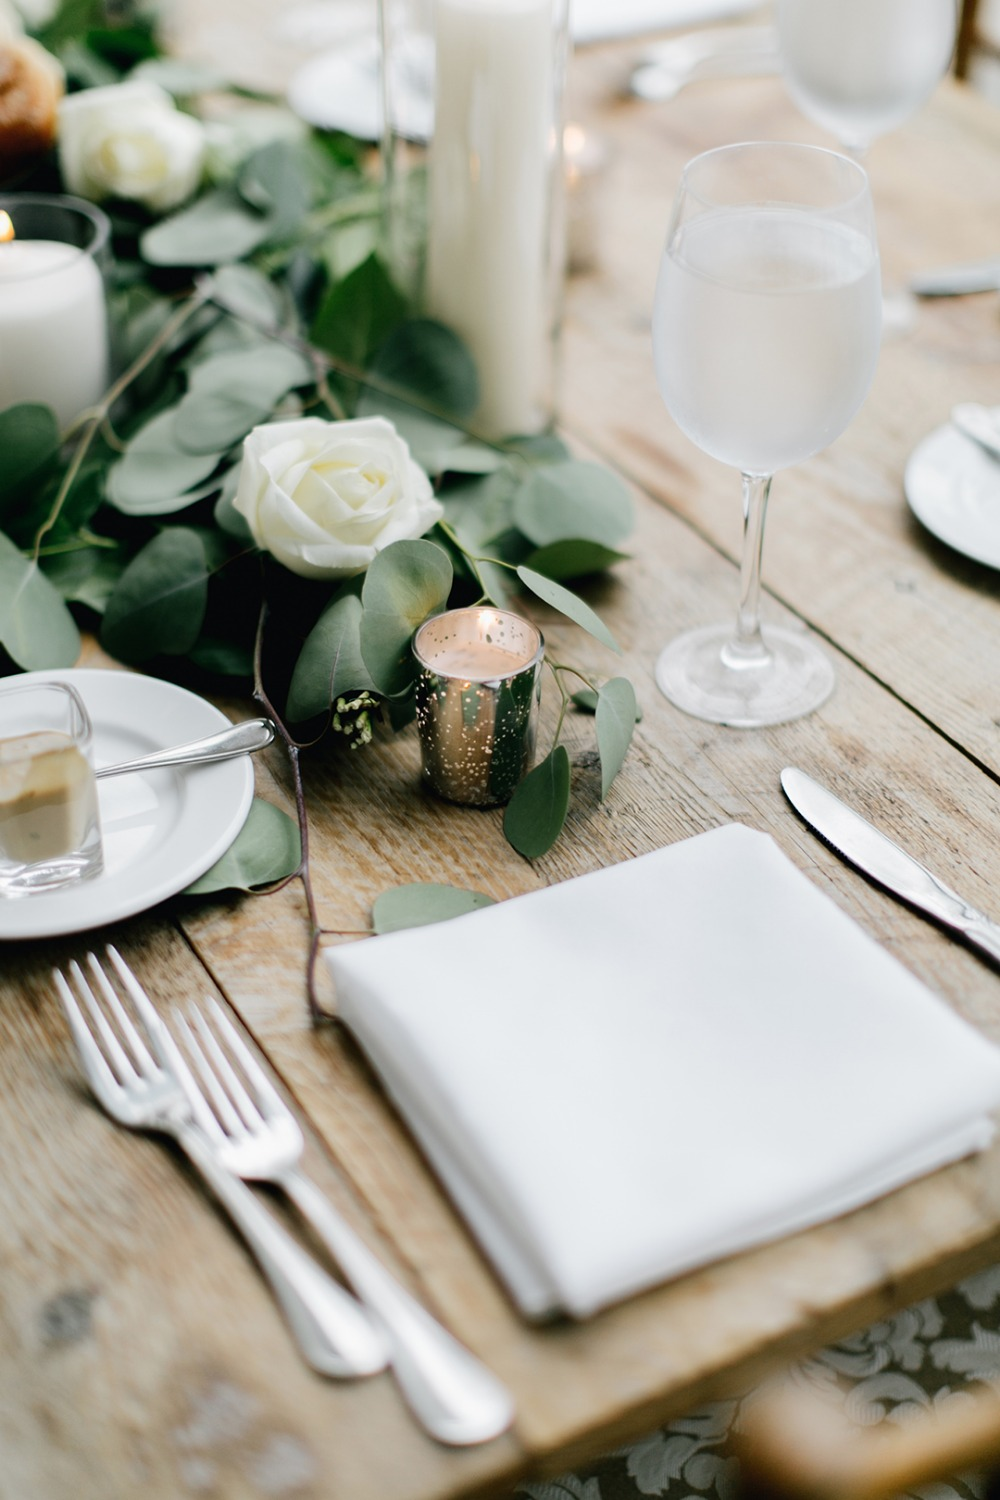 Simple table setting idea